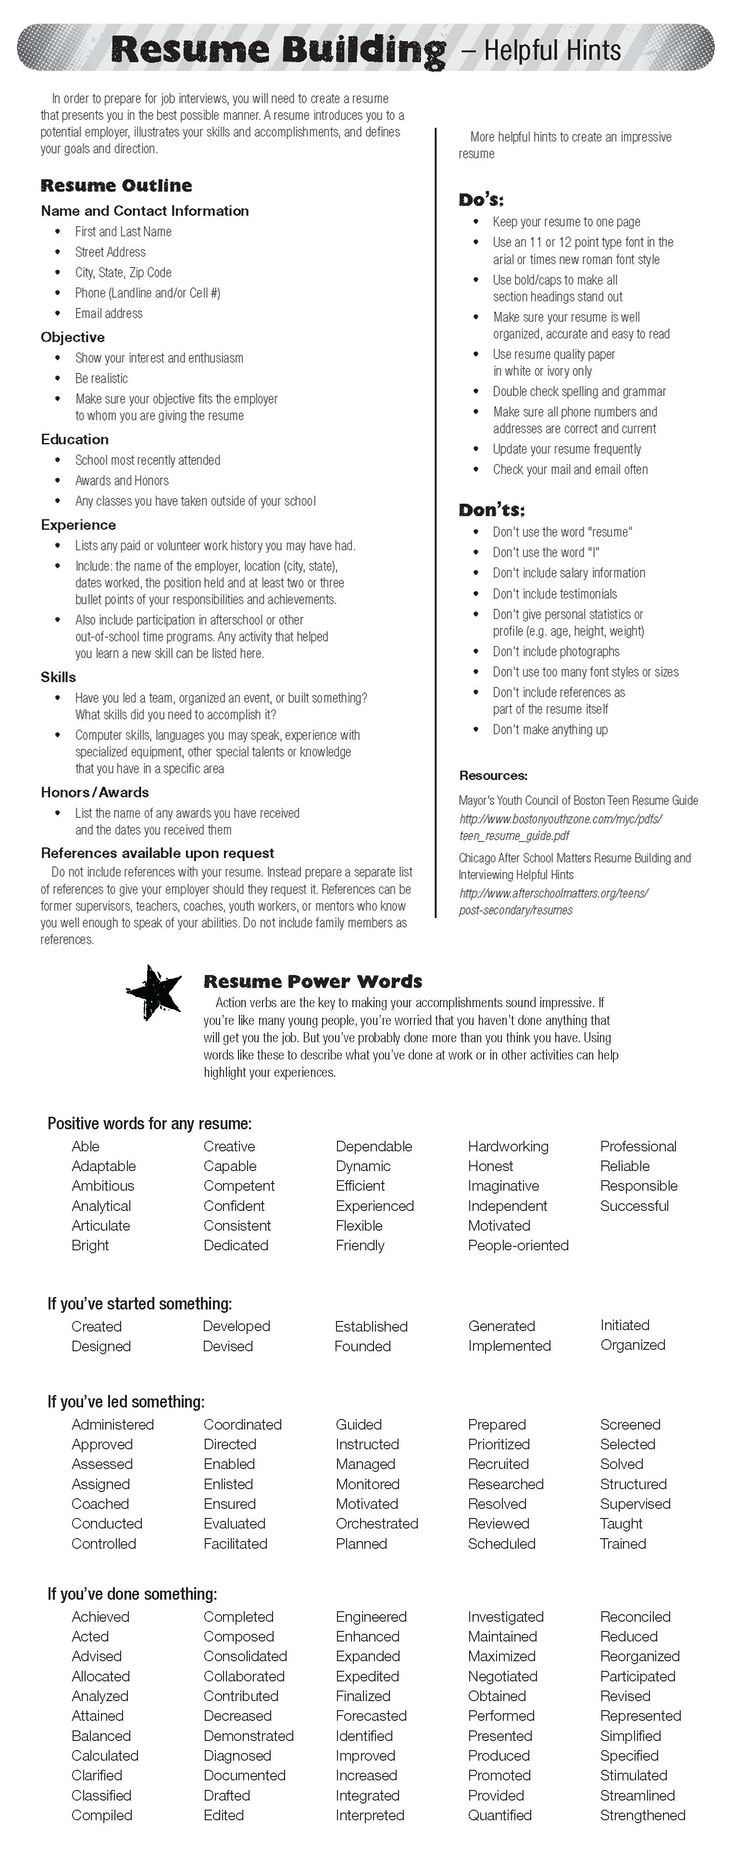 Opposenewapstandardsus  Ravishing  Ideas About Resume On Pinterest  Cv Format Resume Cv And  With Remarkable  Ideas About Resume On Pinterest  Cv Format Resume Cv And Resume Templates With Amazing Best Resume Layout Also Resume Template Word Free In Addition Best Resume Objectives And Sample Resume Objective Statements As Well As Keywords To Use In A Resume Additionally Entry Level It Resume From Pinterestcom With Opposenewapstandardsus  Remarkable  Ideas About Resume On Pinterest  Cv Format Resume Cv And  With Amazing  Ideas About Resume On Pinterest  Cv Format Resume Cv And Resume Templates And Ravishing Best Resume Layout Also Resume Template Word Free In Addition Best Resume Objectives From Pinterestcom